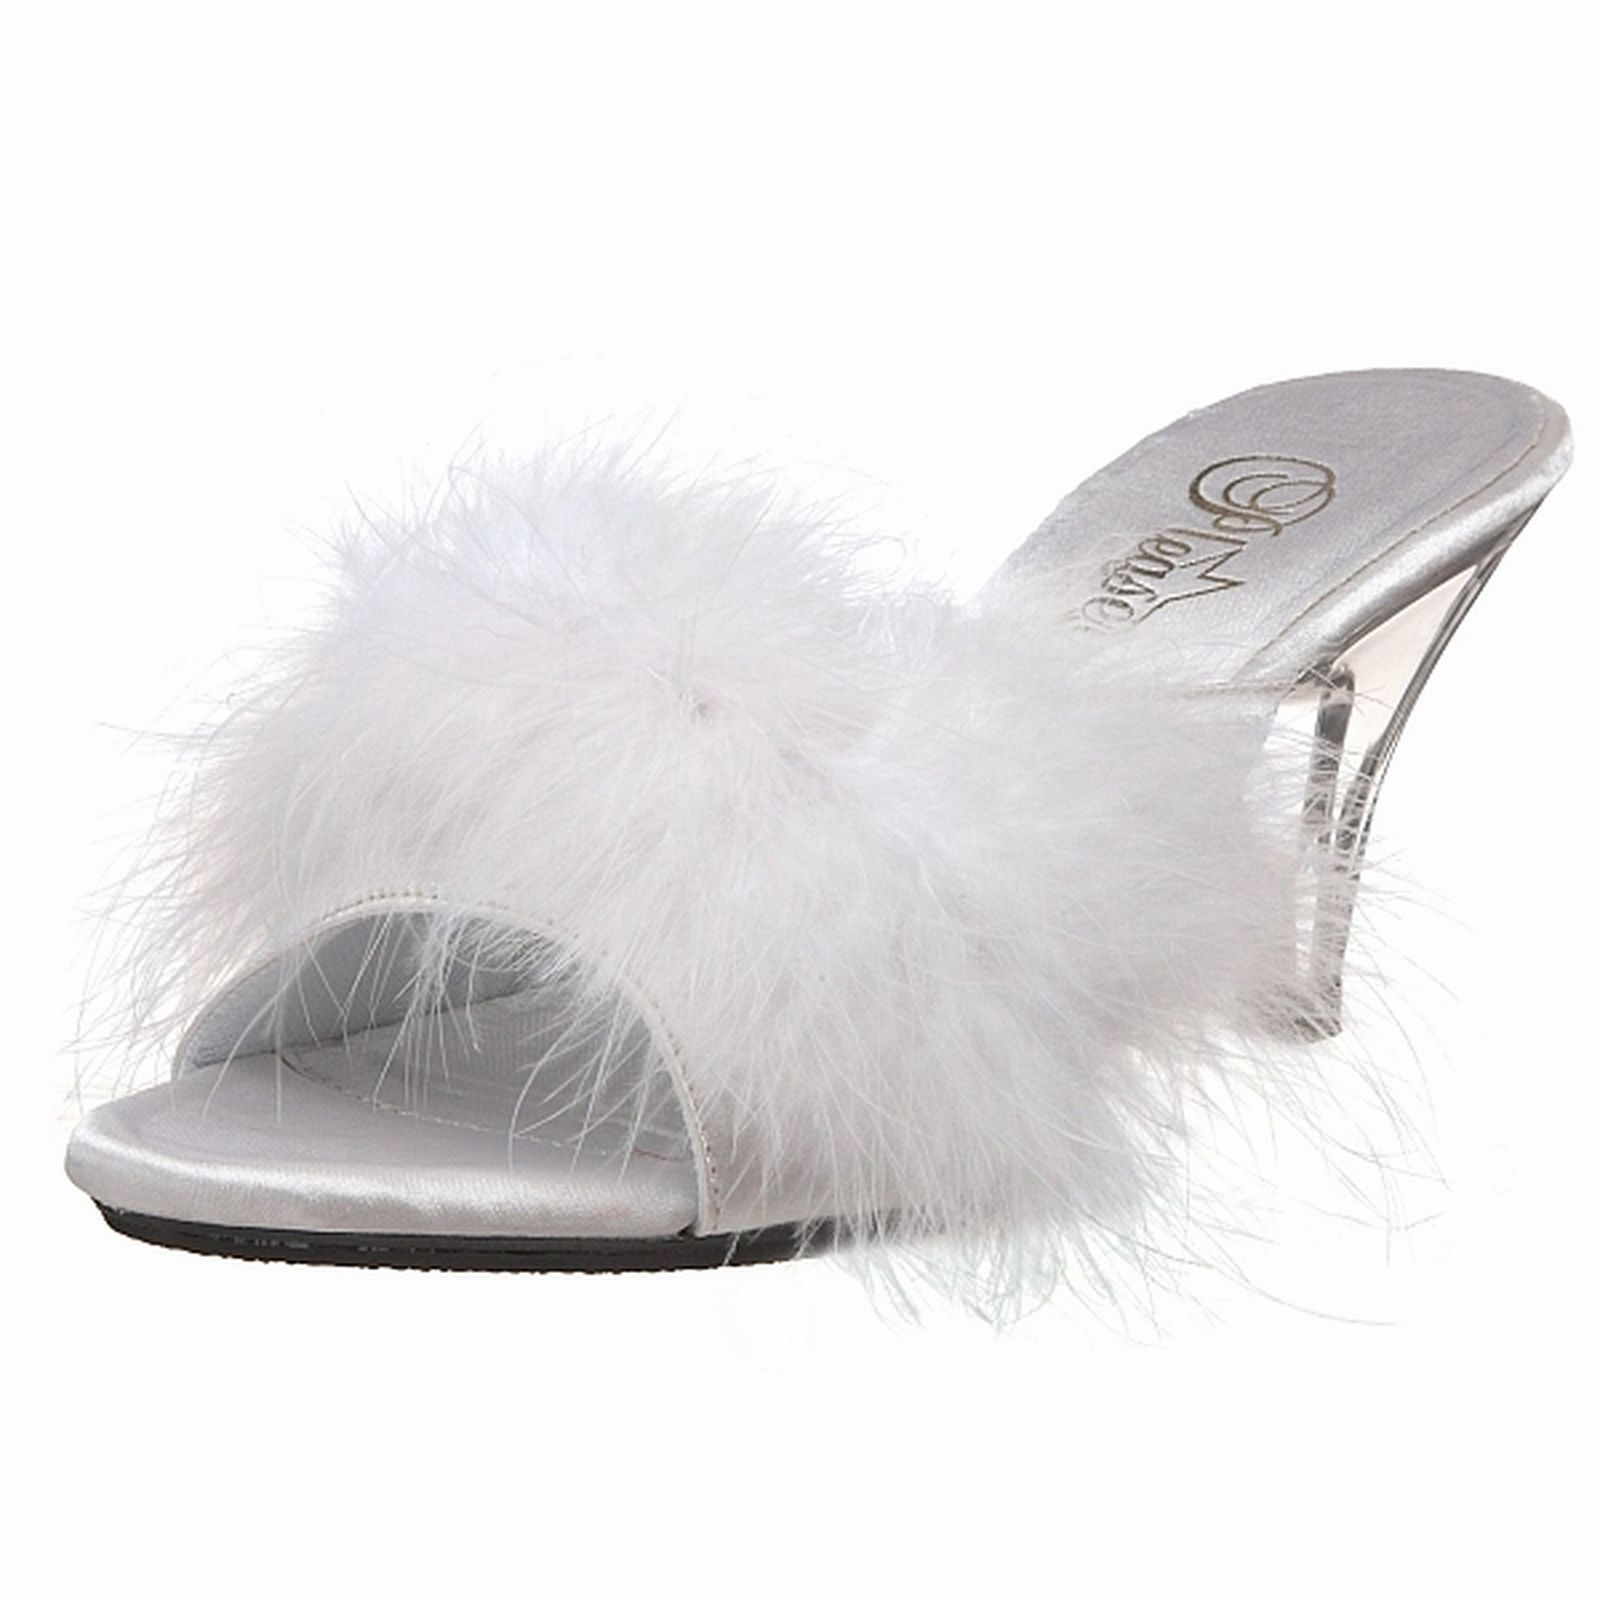 12c3d6cf8f4 Fabulicious Heels Satin Marabou Faux Fur Sexy Slipper Sandal Belle-301F  White